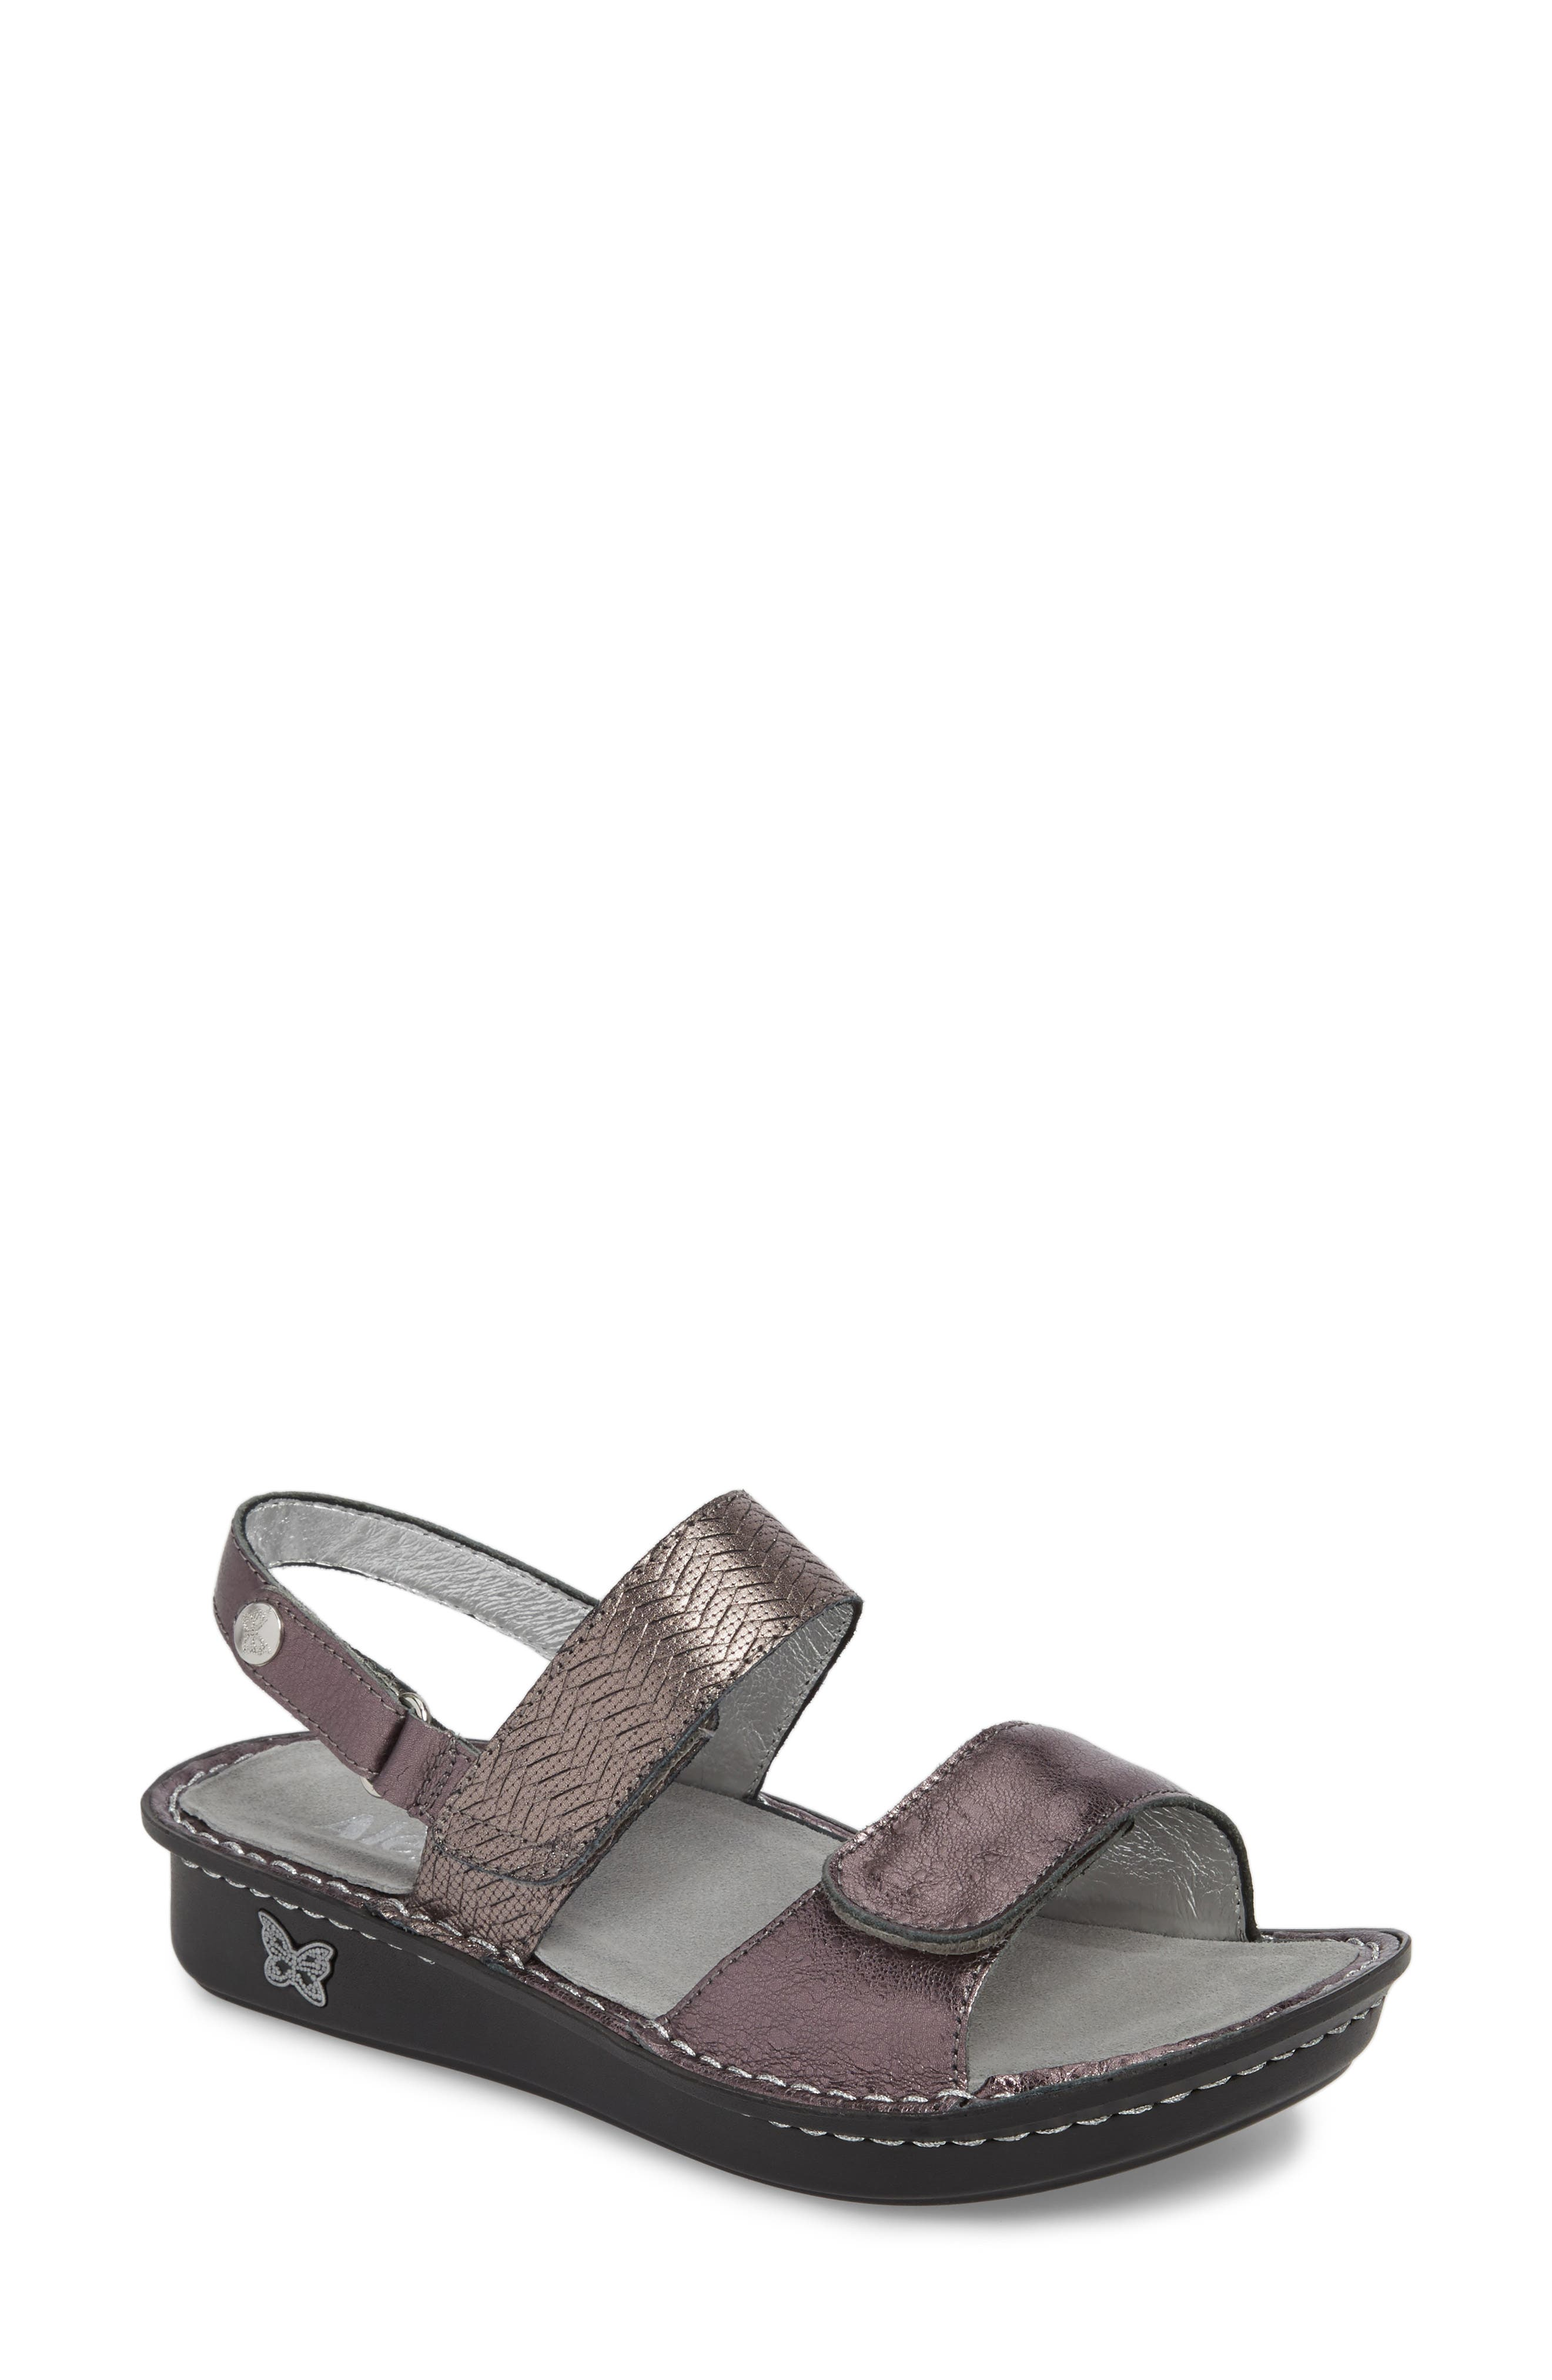 'Verona' Sandal,                             Main thumbnail 1, color,                             Braided Pewter Leather